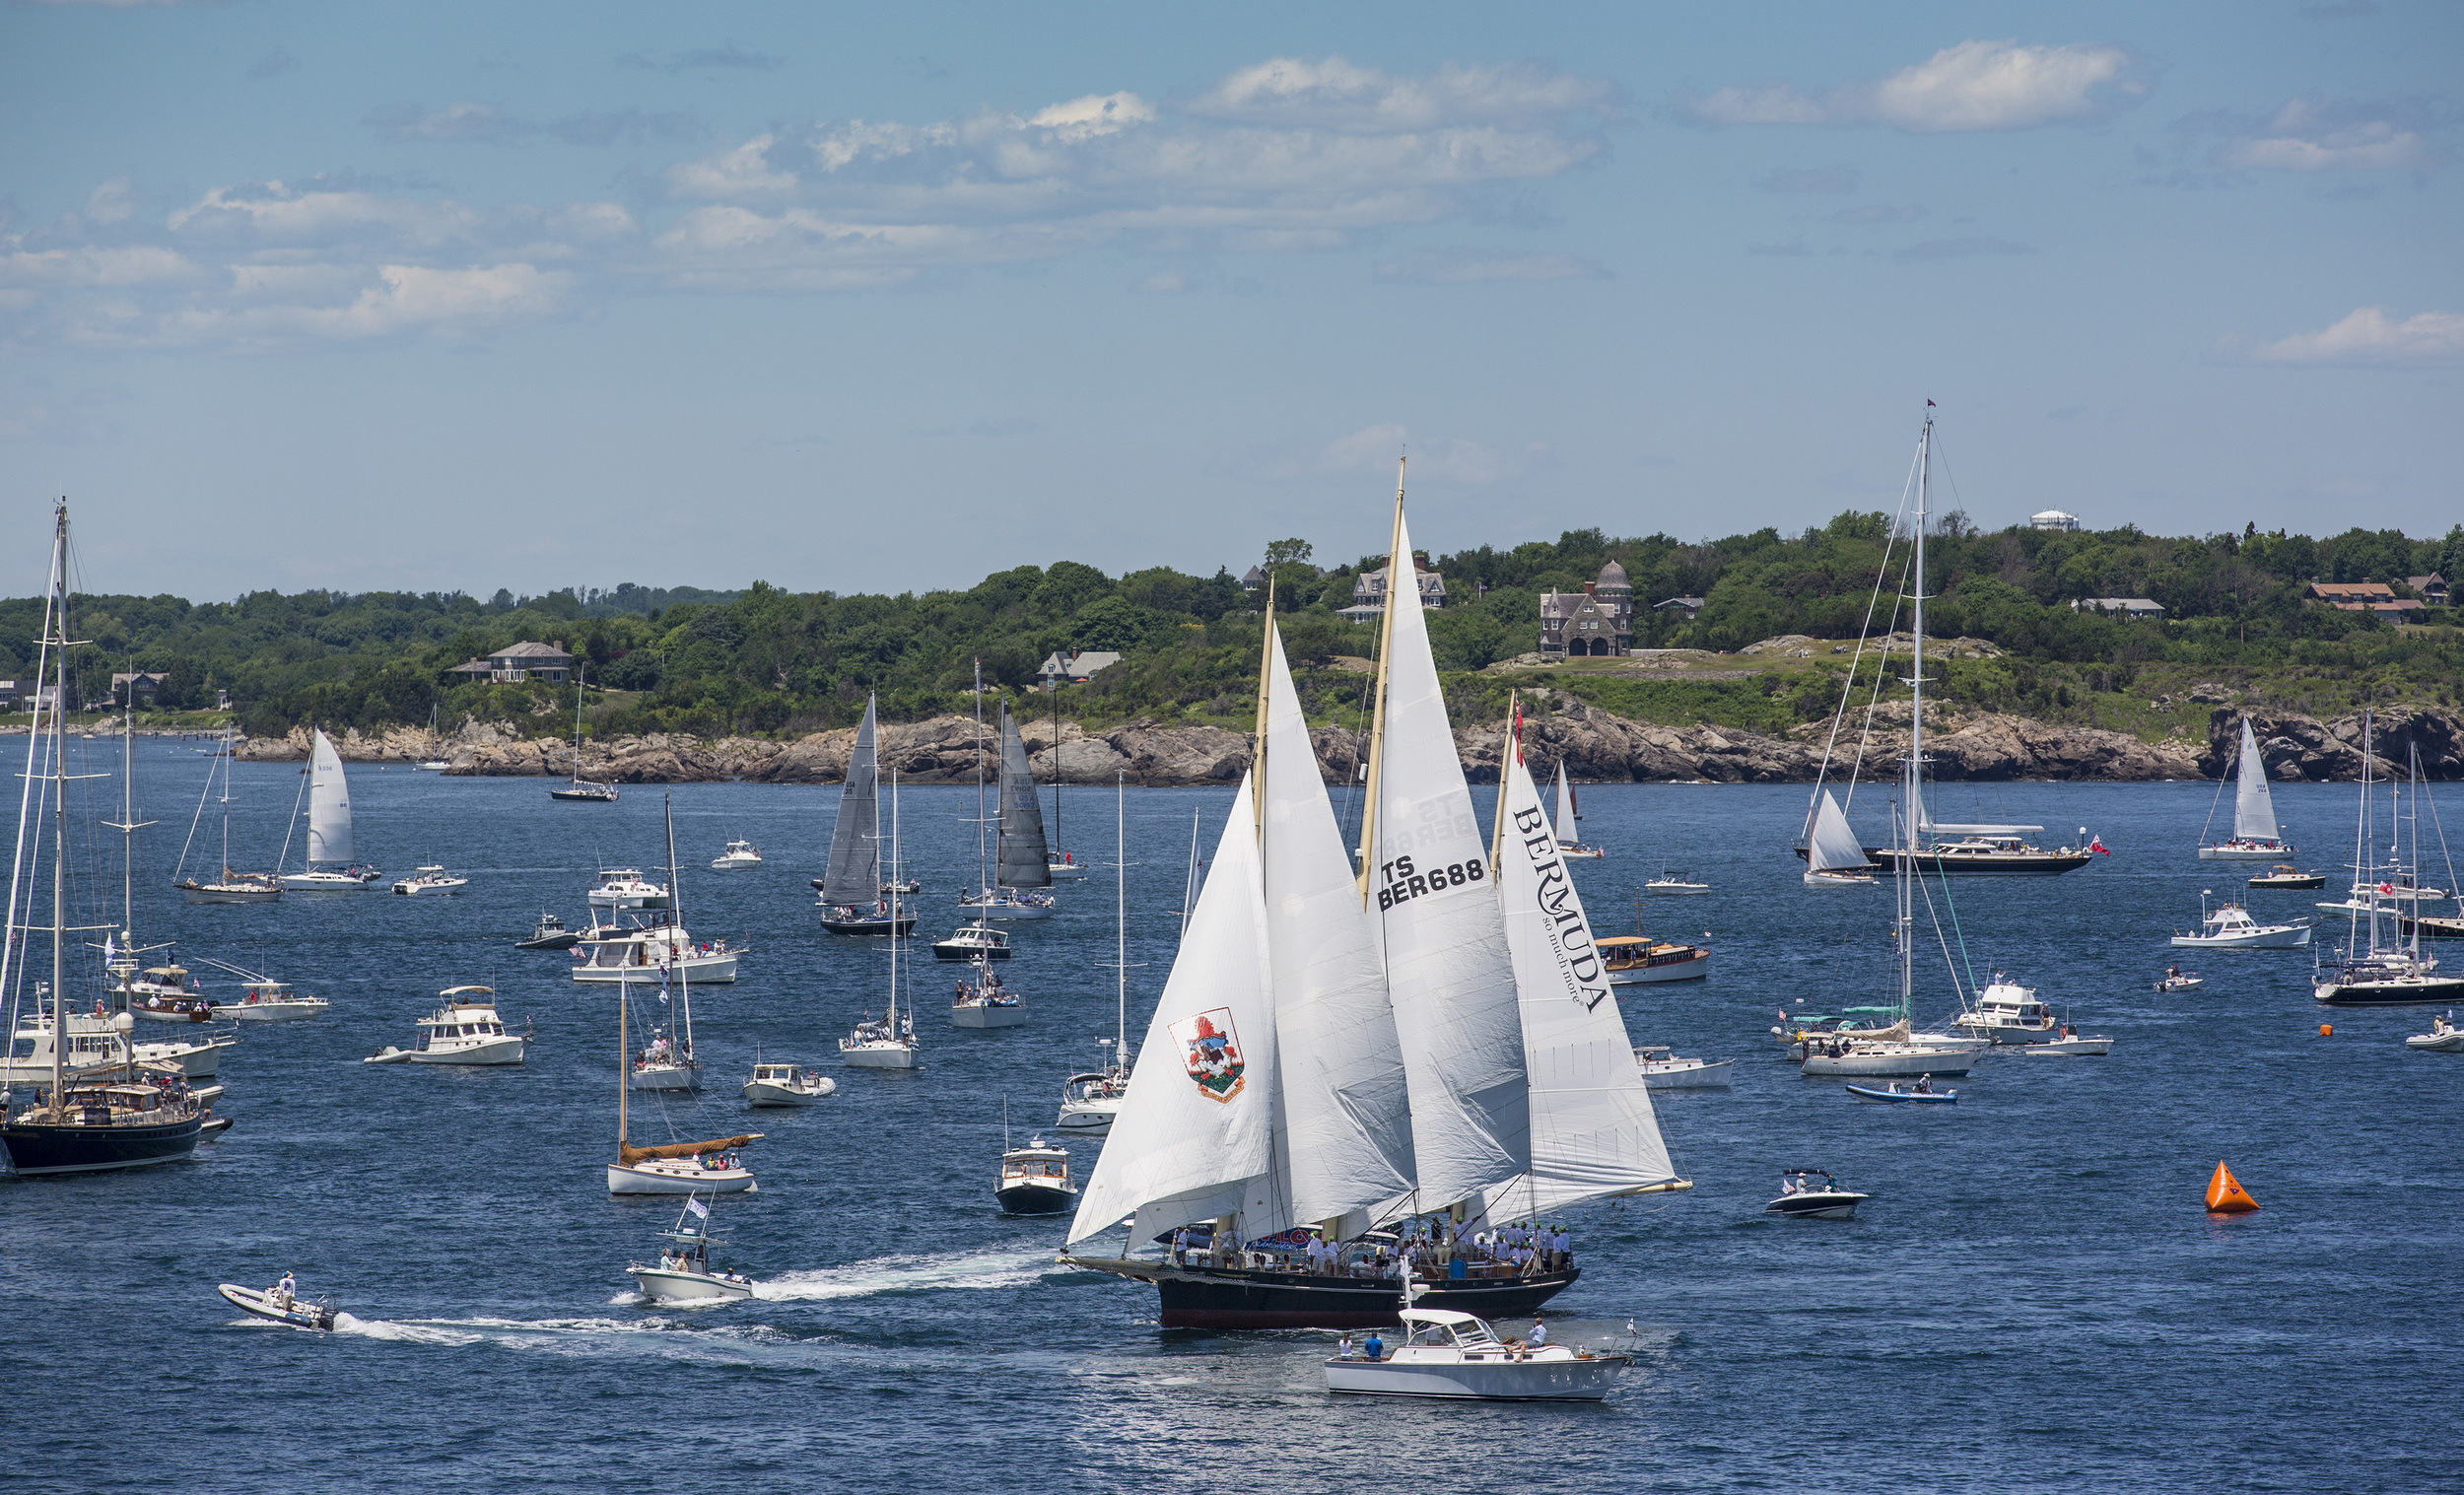 The many spectator boats off Castle Hill in Newport, R.I. for the start of the Newport Bermuda Race (Photo Credit: Daniel Forster/PPL)